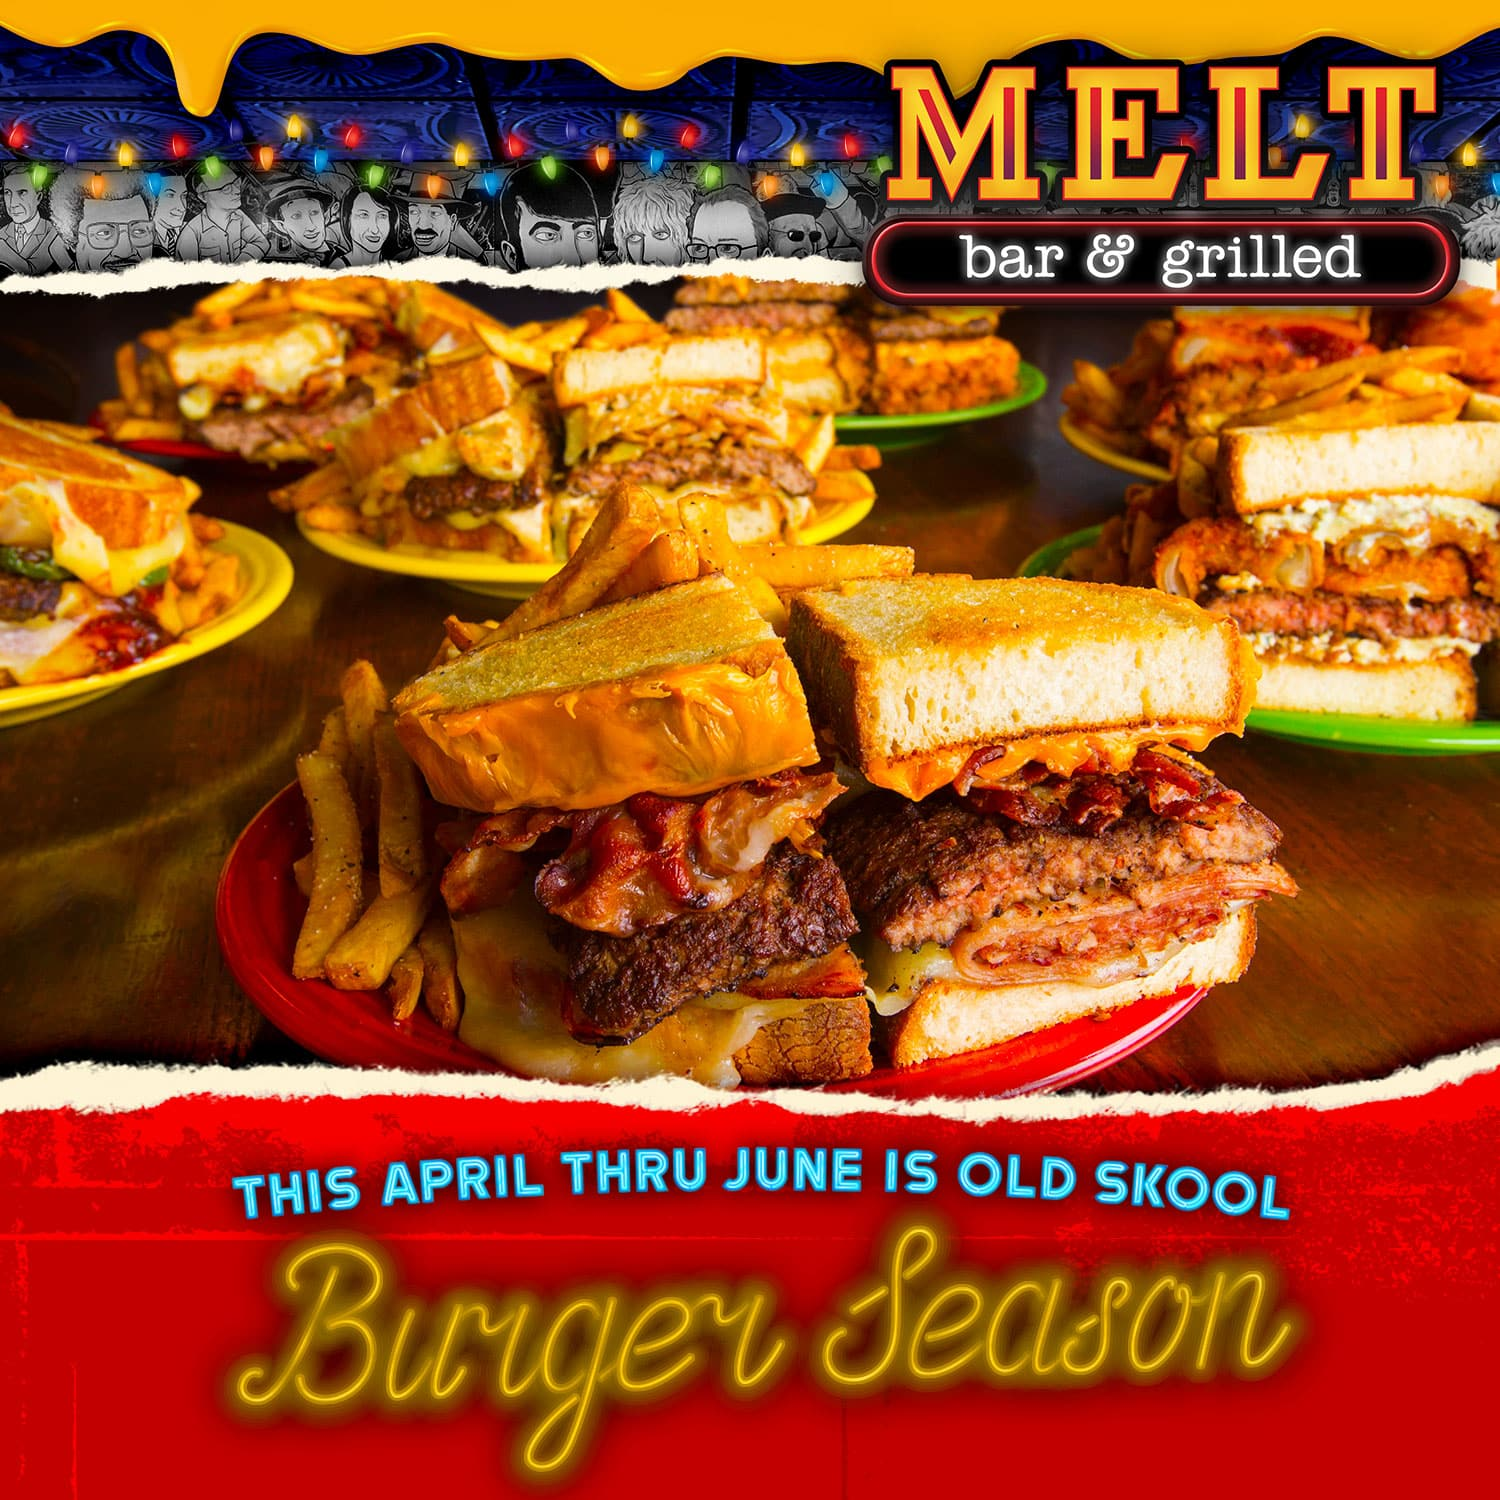 Old Skool Burger Season